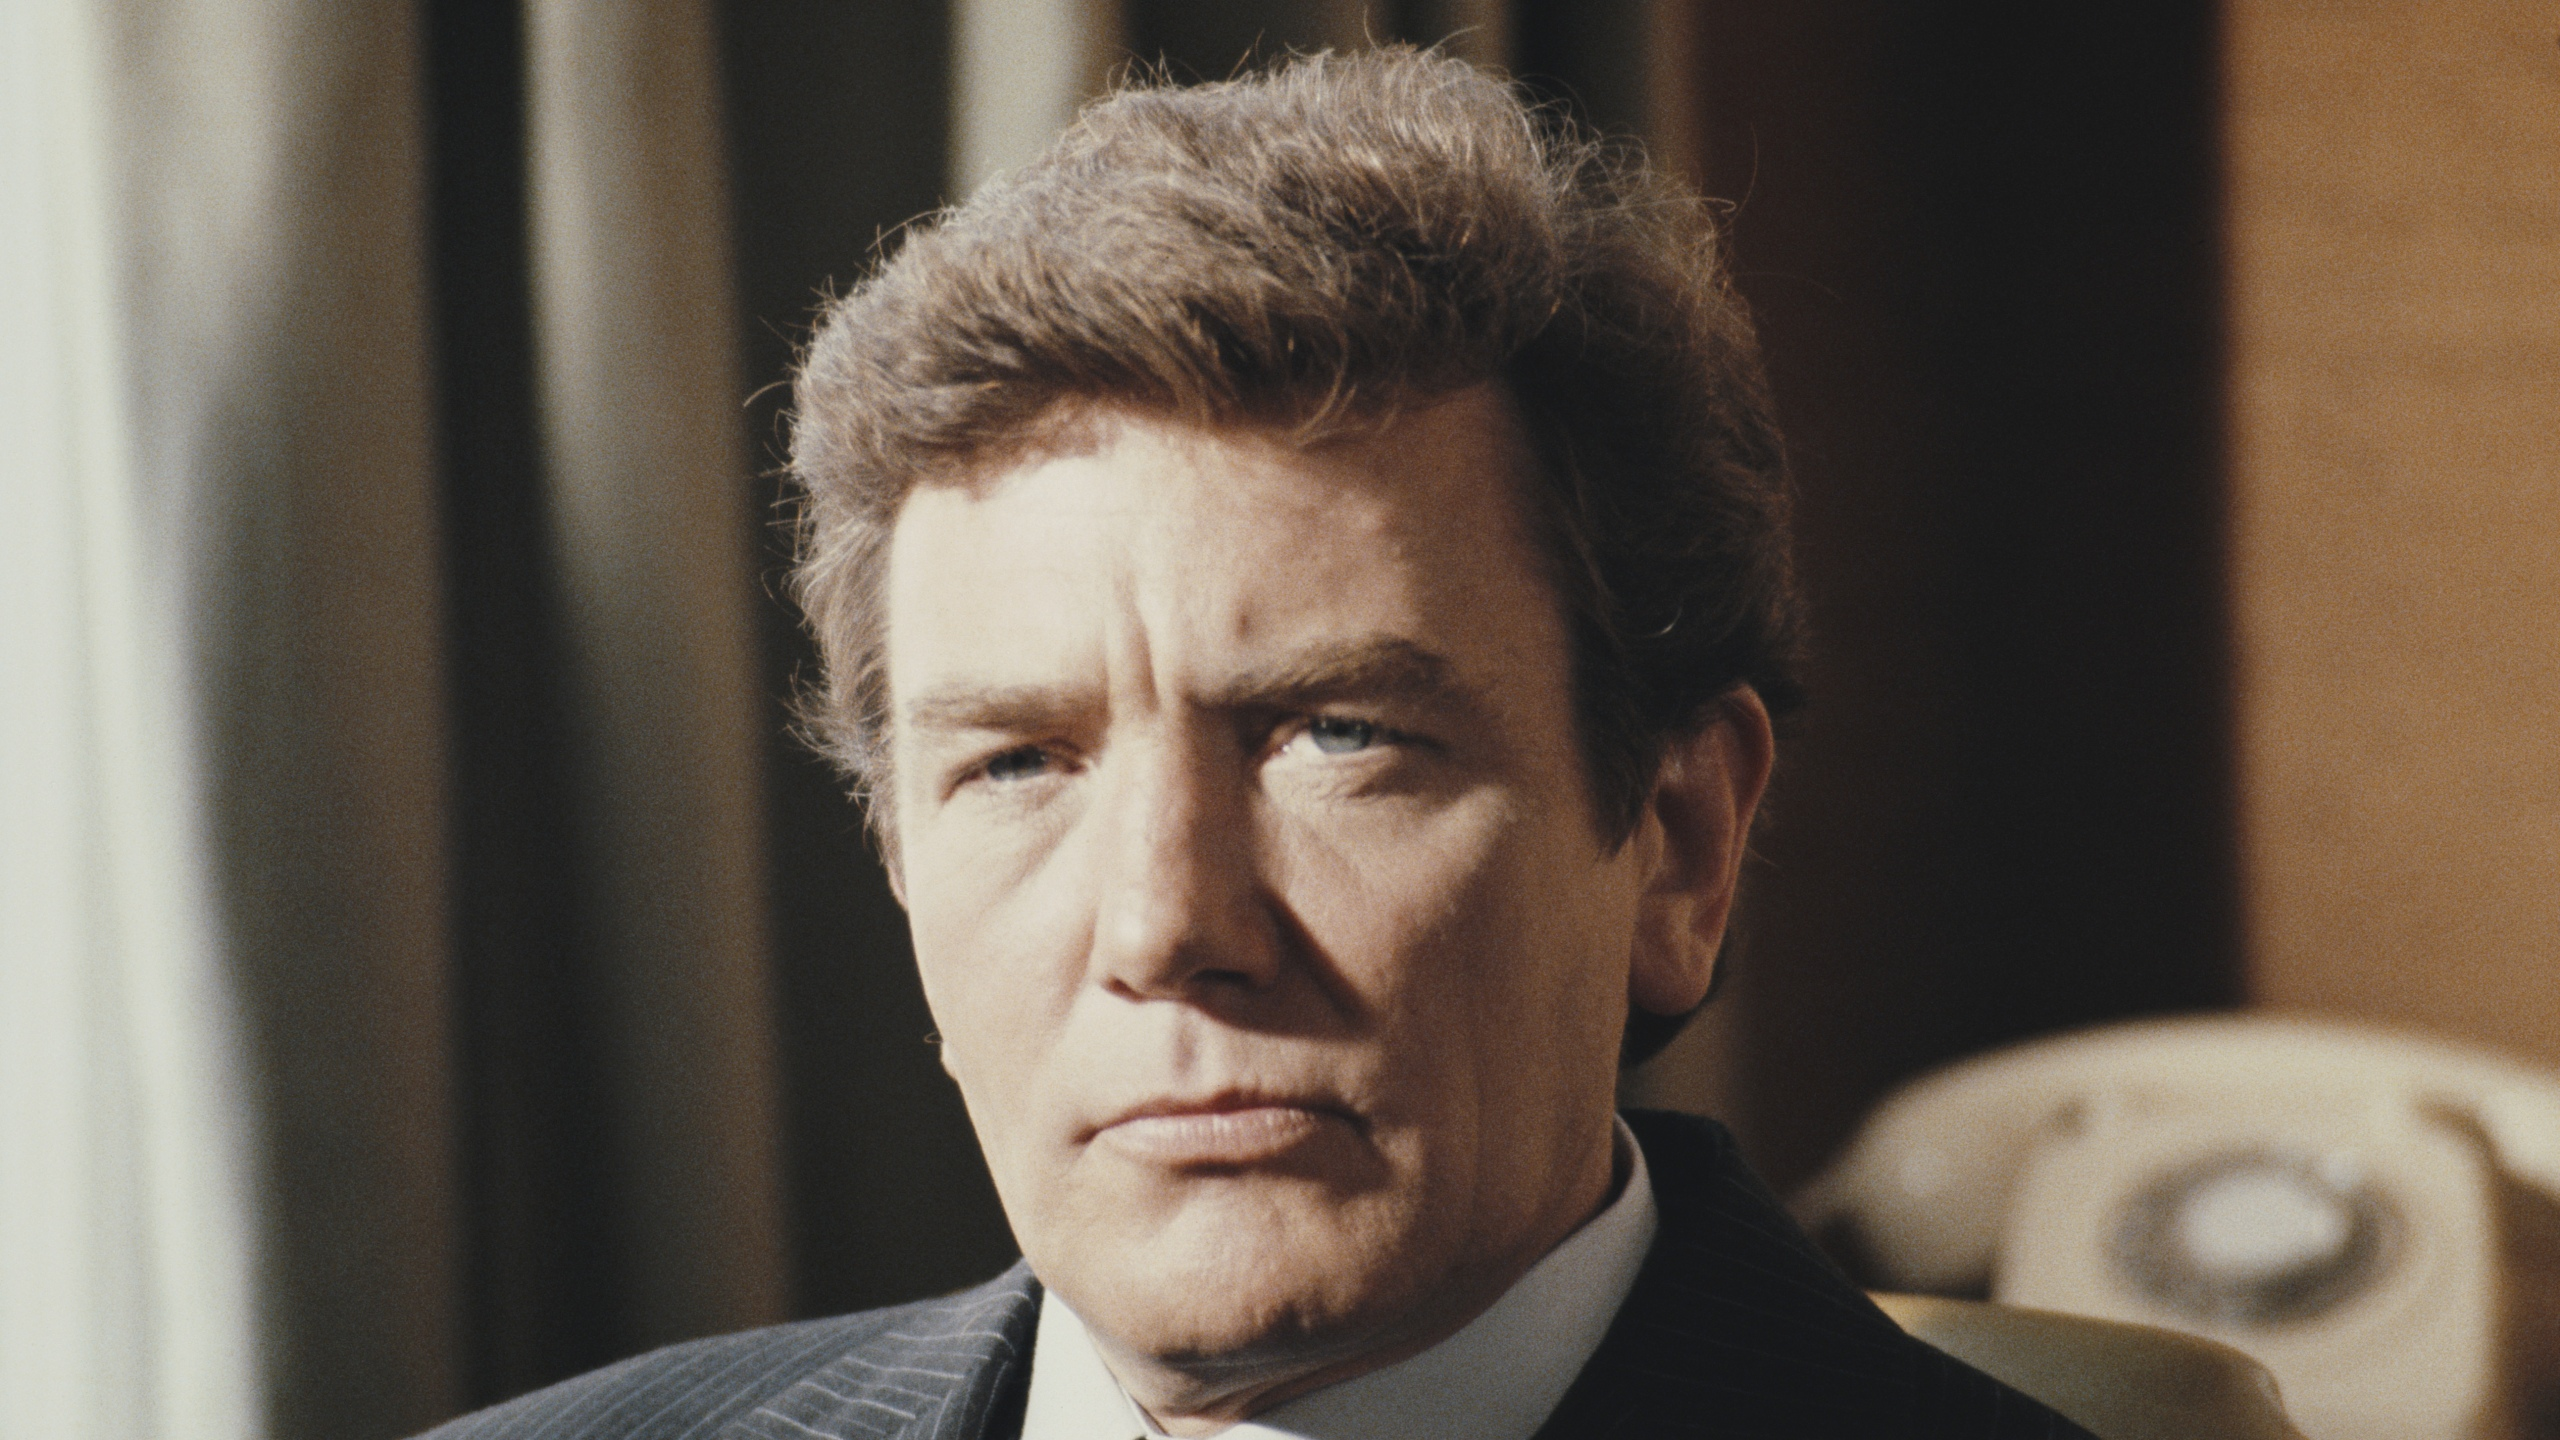 English actor Albert Finney in 1985. (Credit: Fox Photos/Hulton Archive/Getty Images)